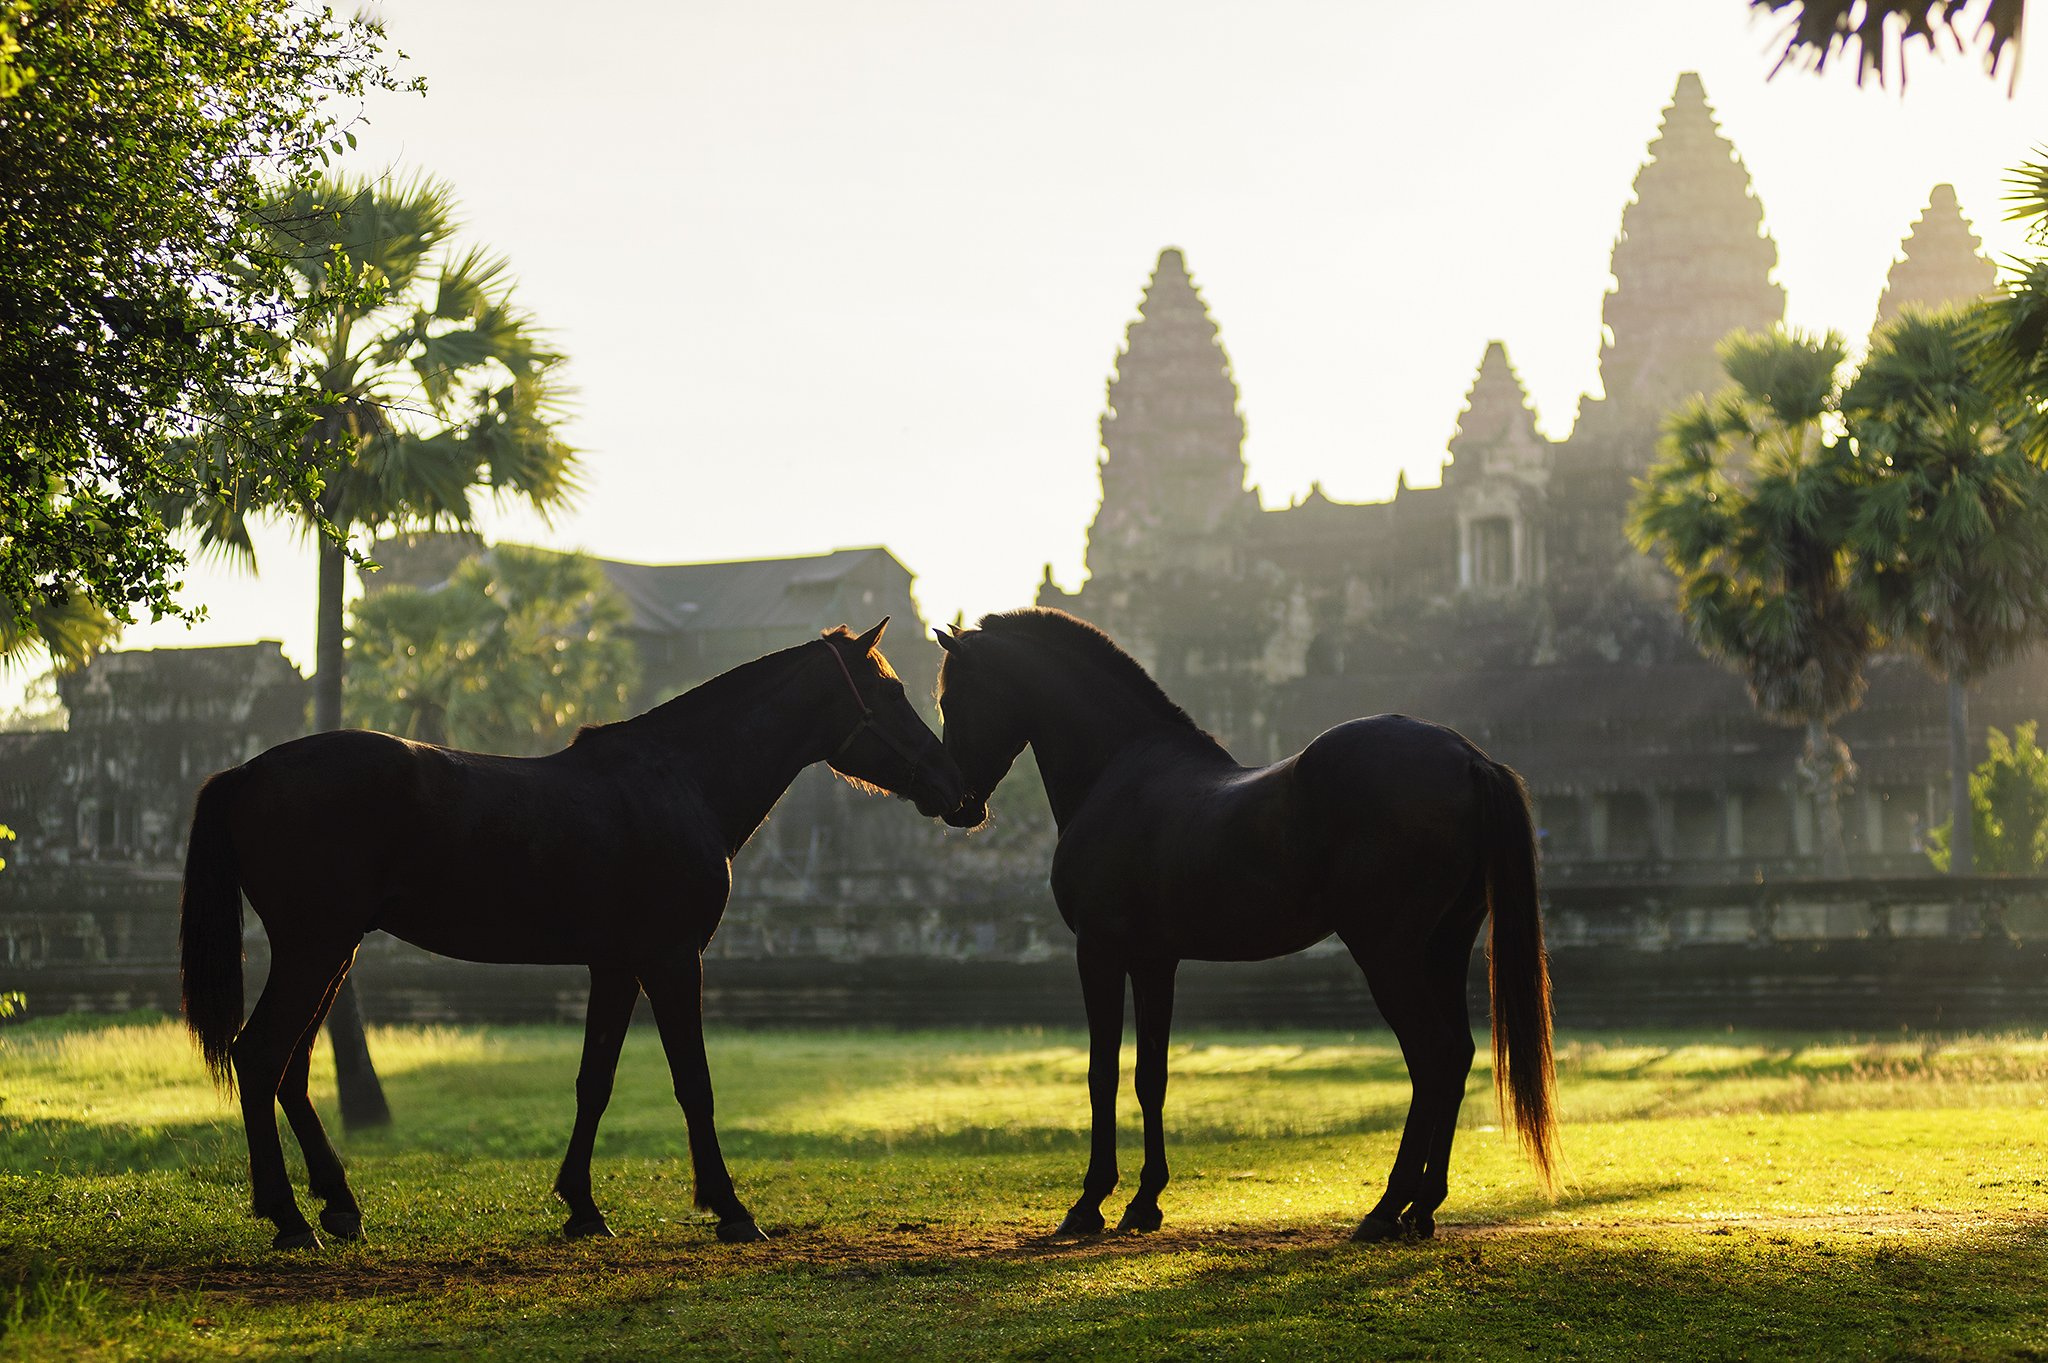 Angkorwat, Animals, Asia, Asian, Heritage, Horse, Light, Moment, Sunlight, Saravut Whanset